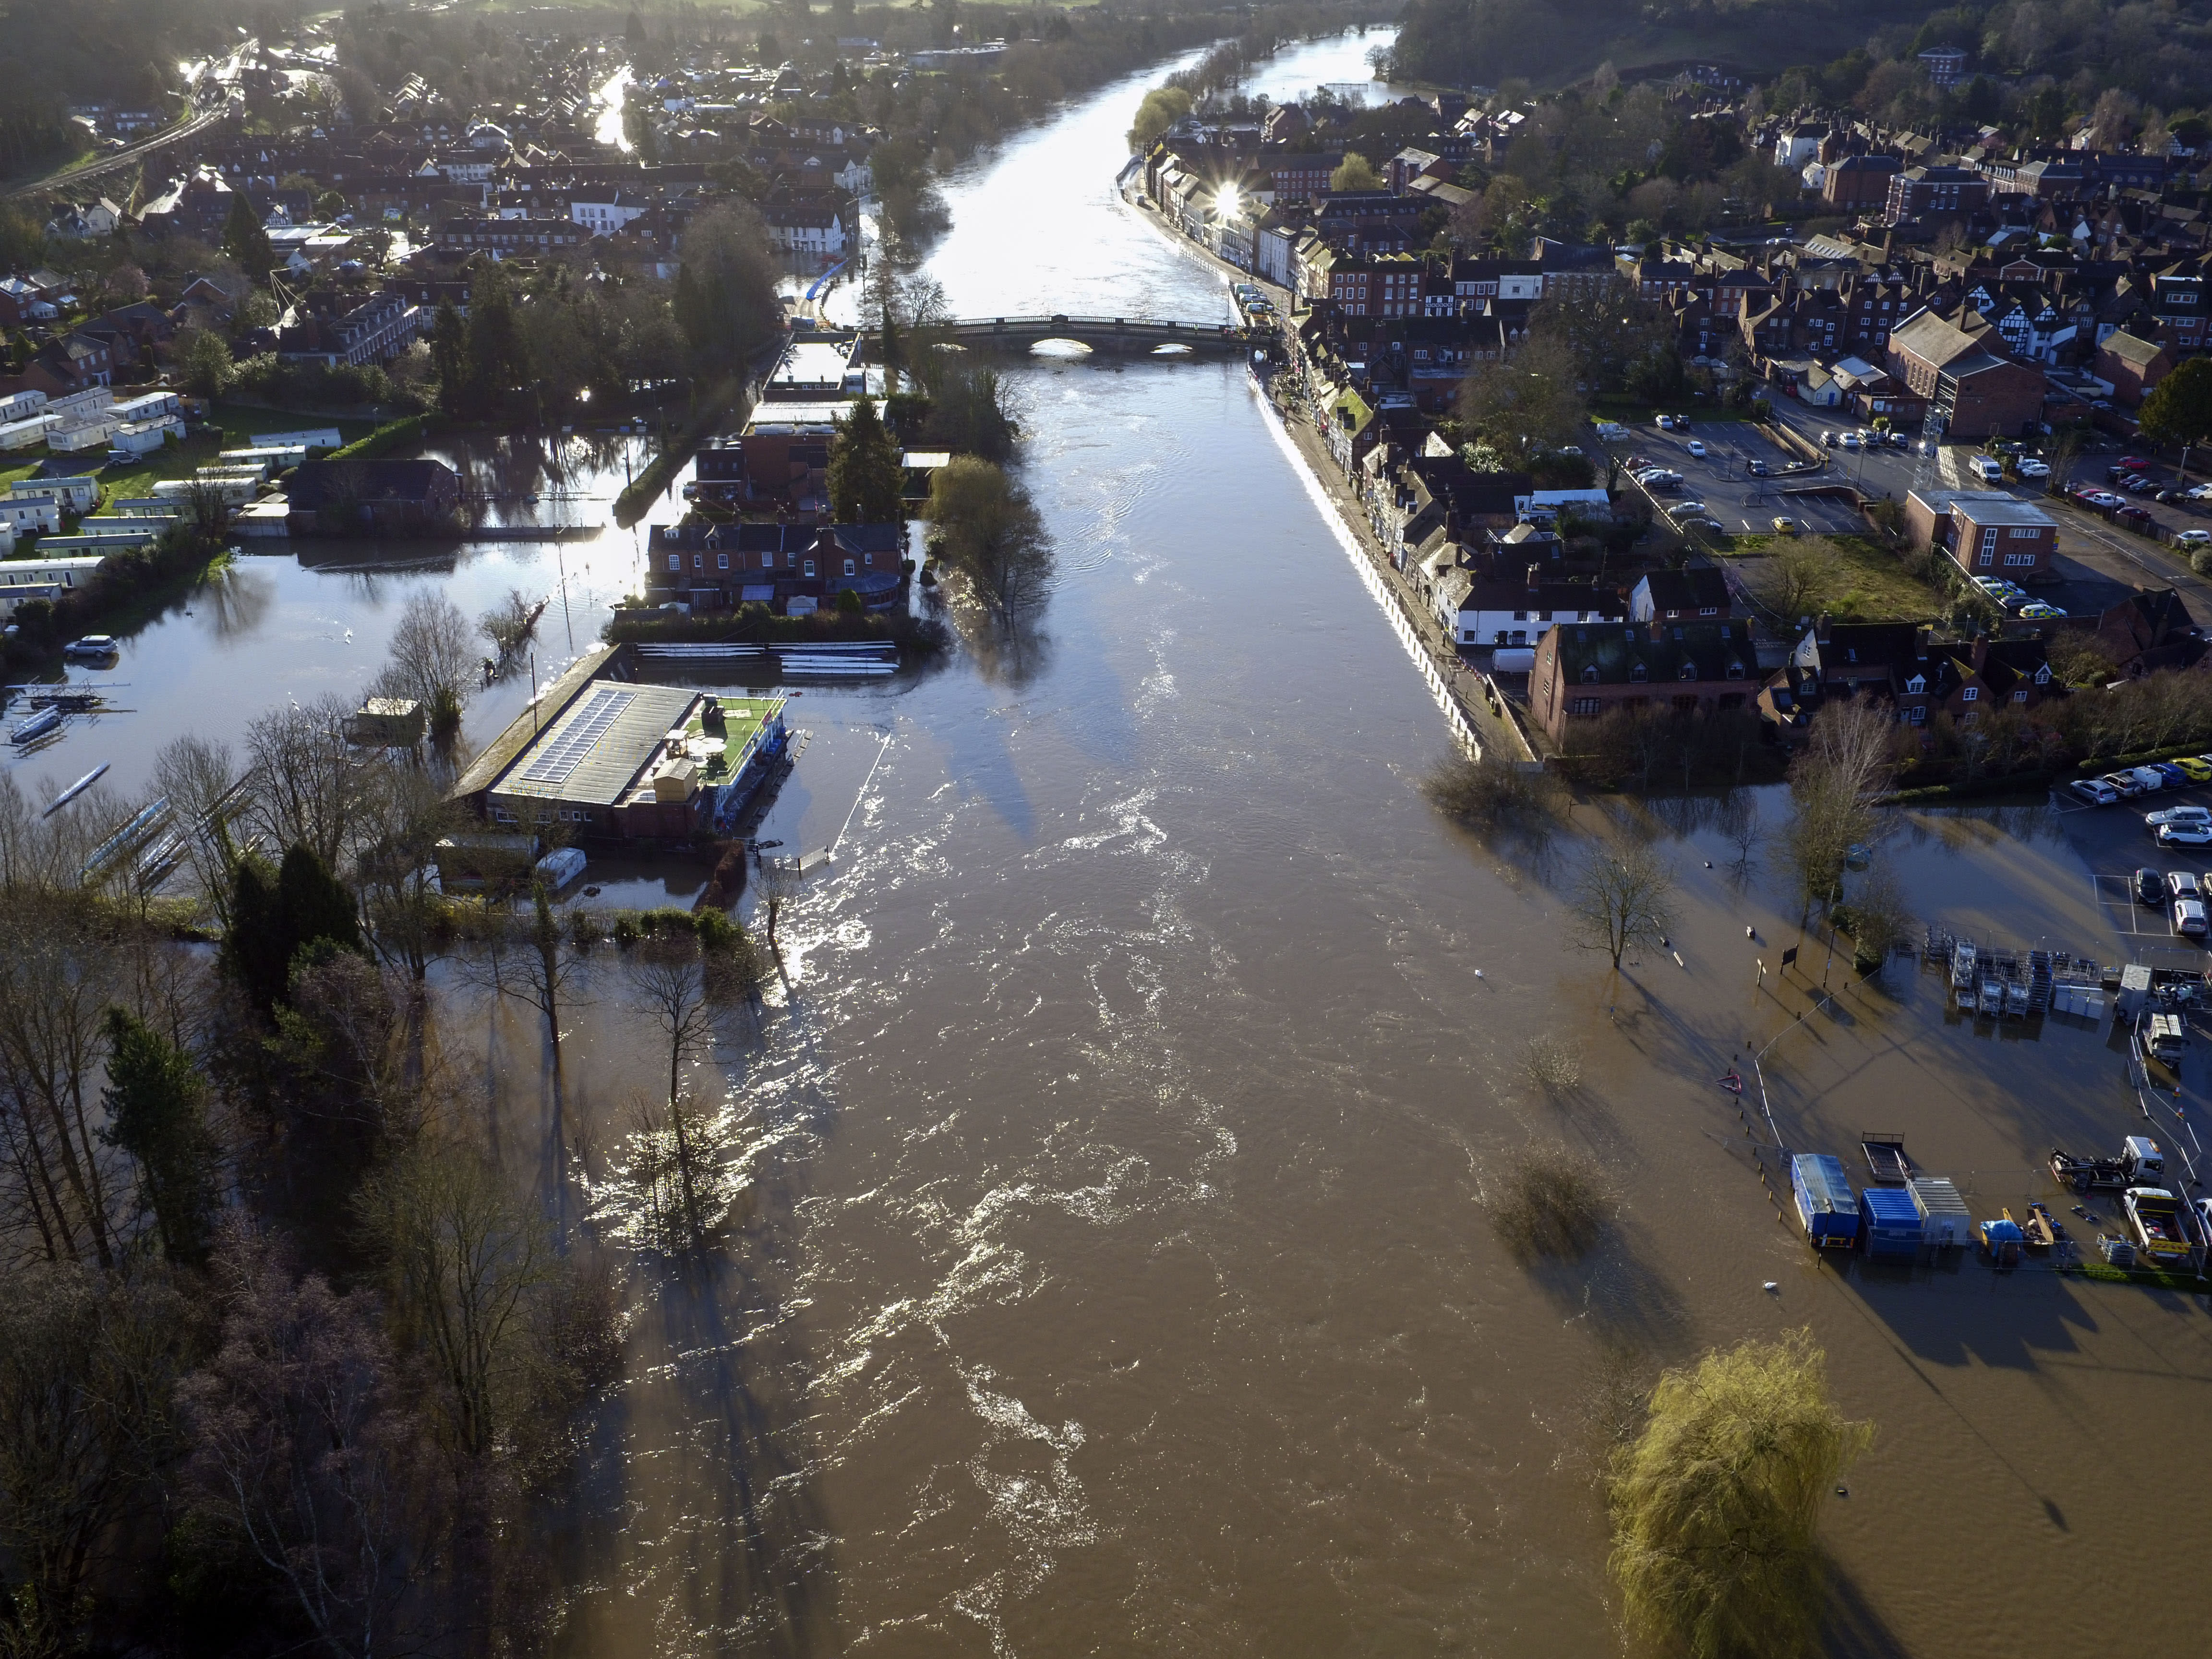 Flooding in Bewdley, Worcestershire, as the River Severn remains high, with warnings of further flooding across the UK.